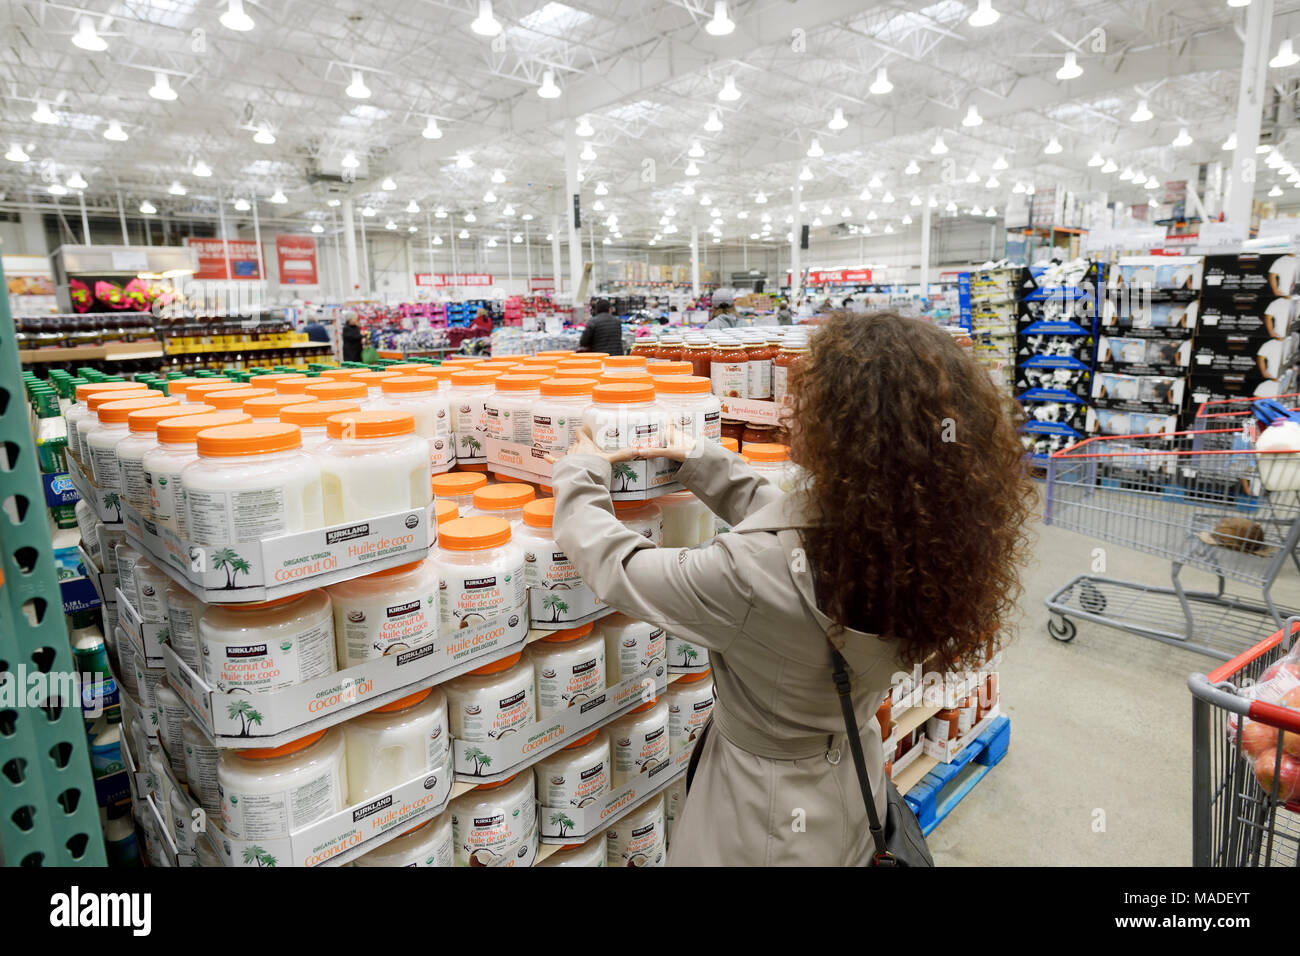 Woman picking a can of Kirkland coconut oil at Costco Wholesale membership warehouse store food section. British Columbia, Canada 2017. Stock Photo